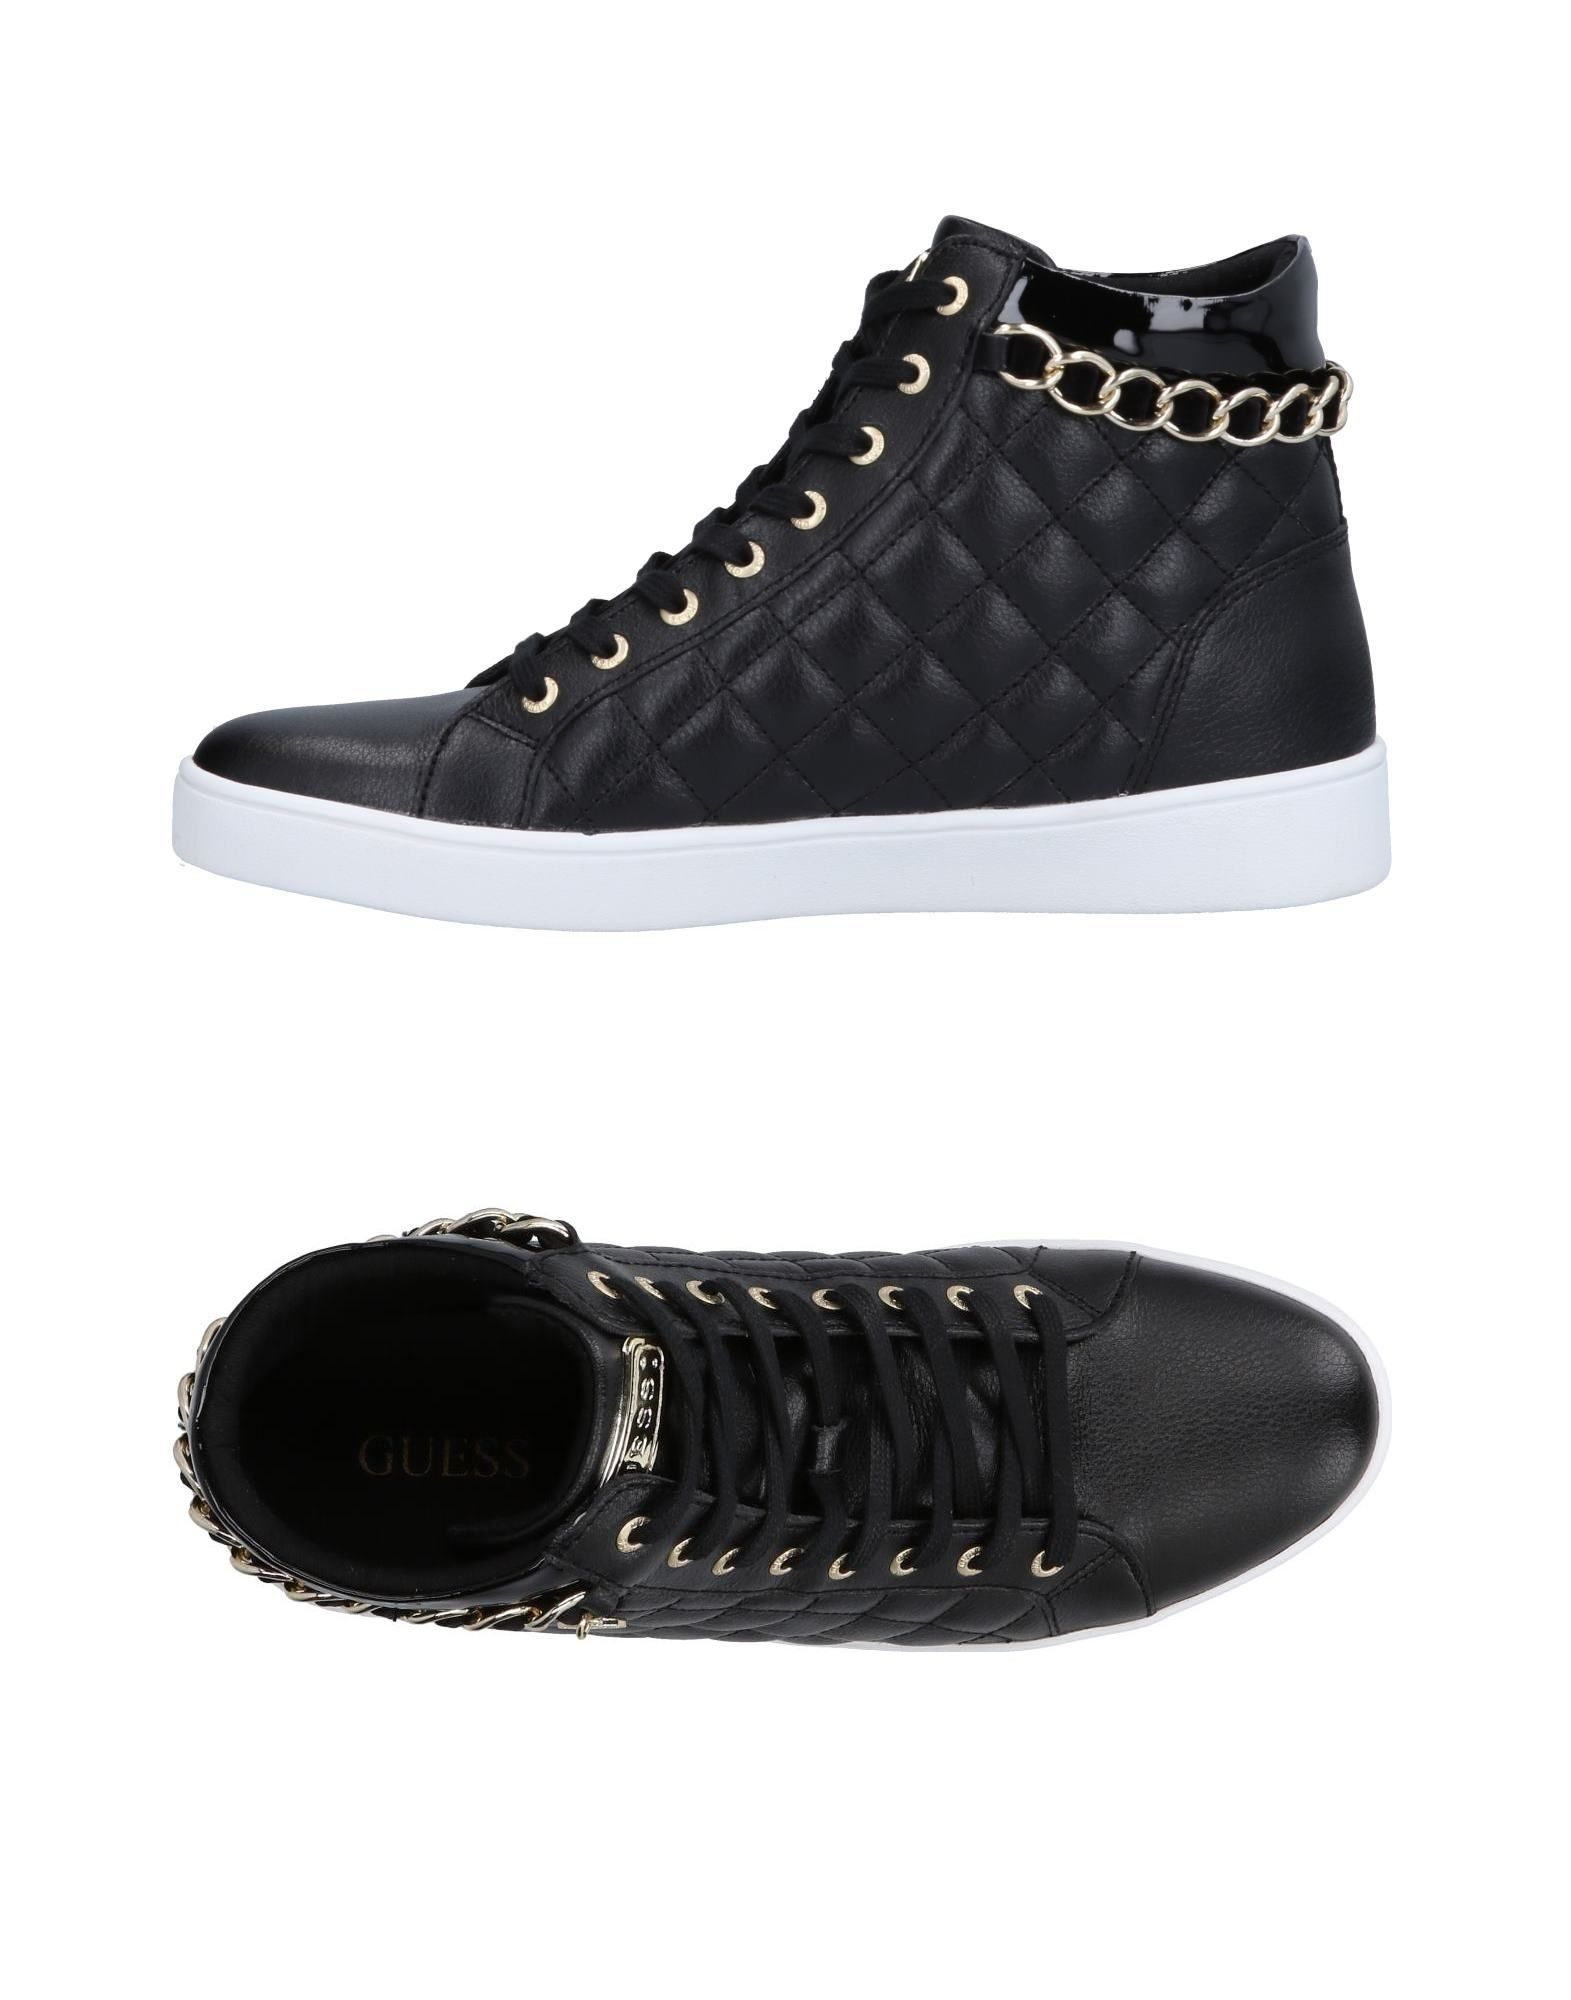 A buon mercato Sneakers Guess Donna - 11498962KF